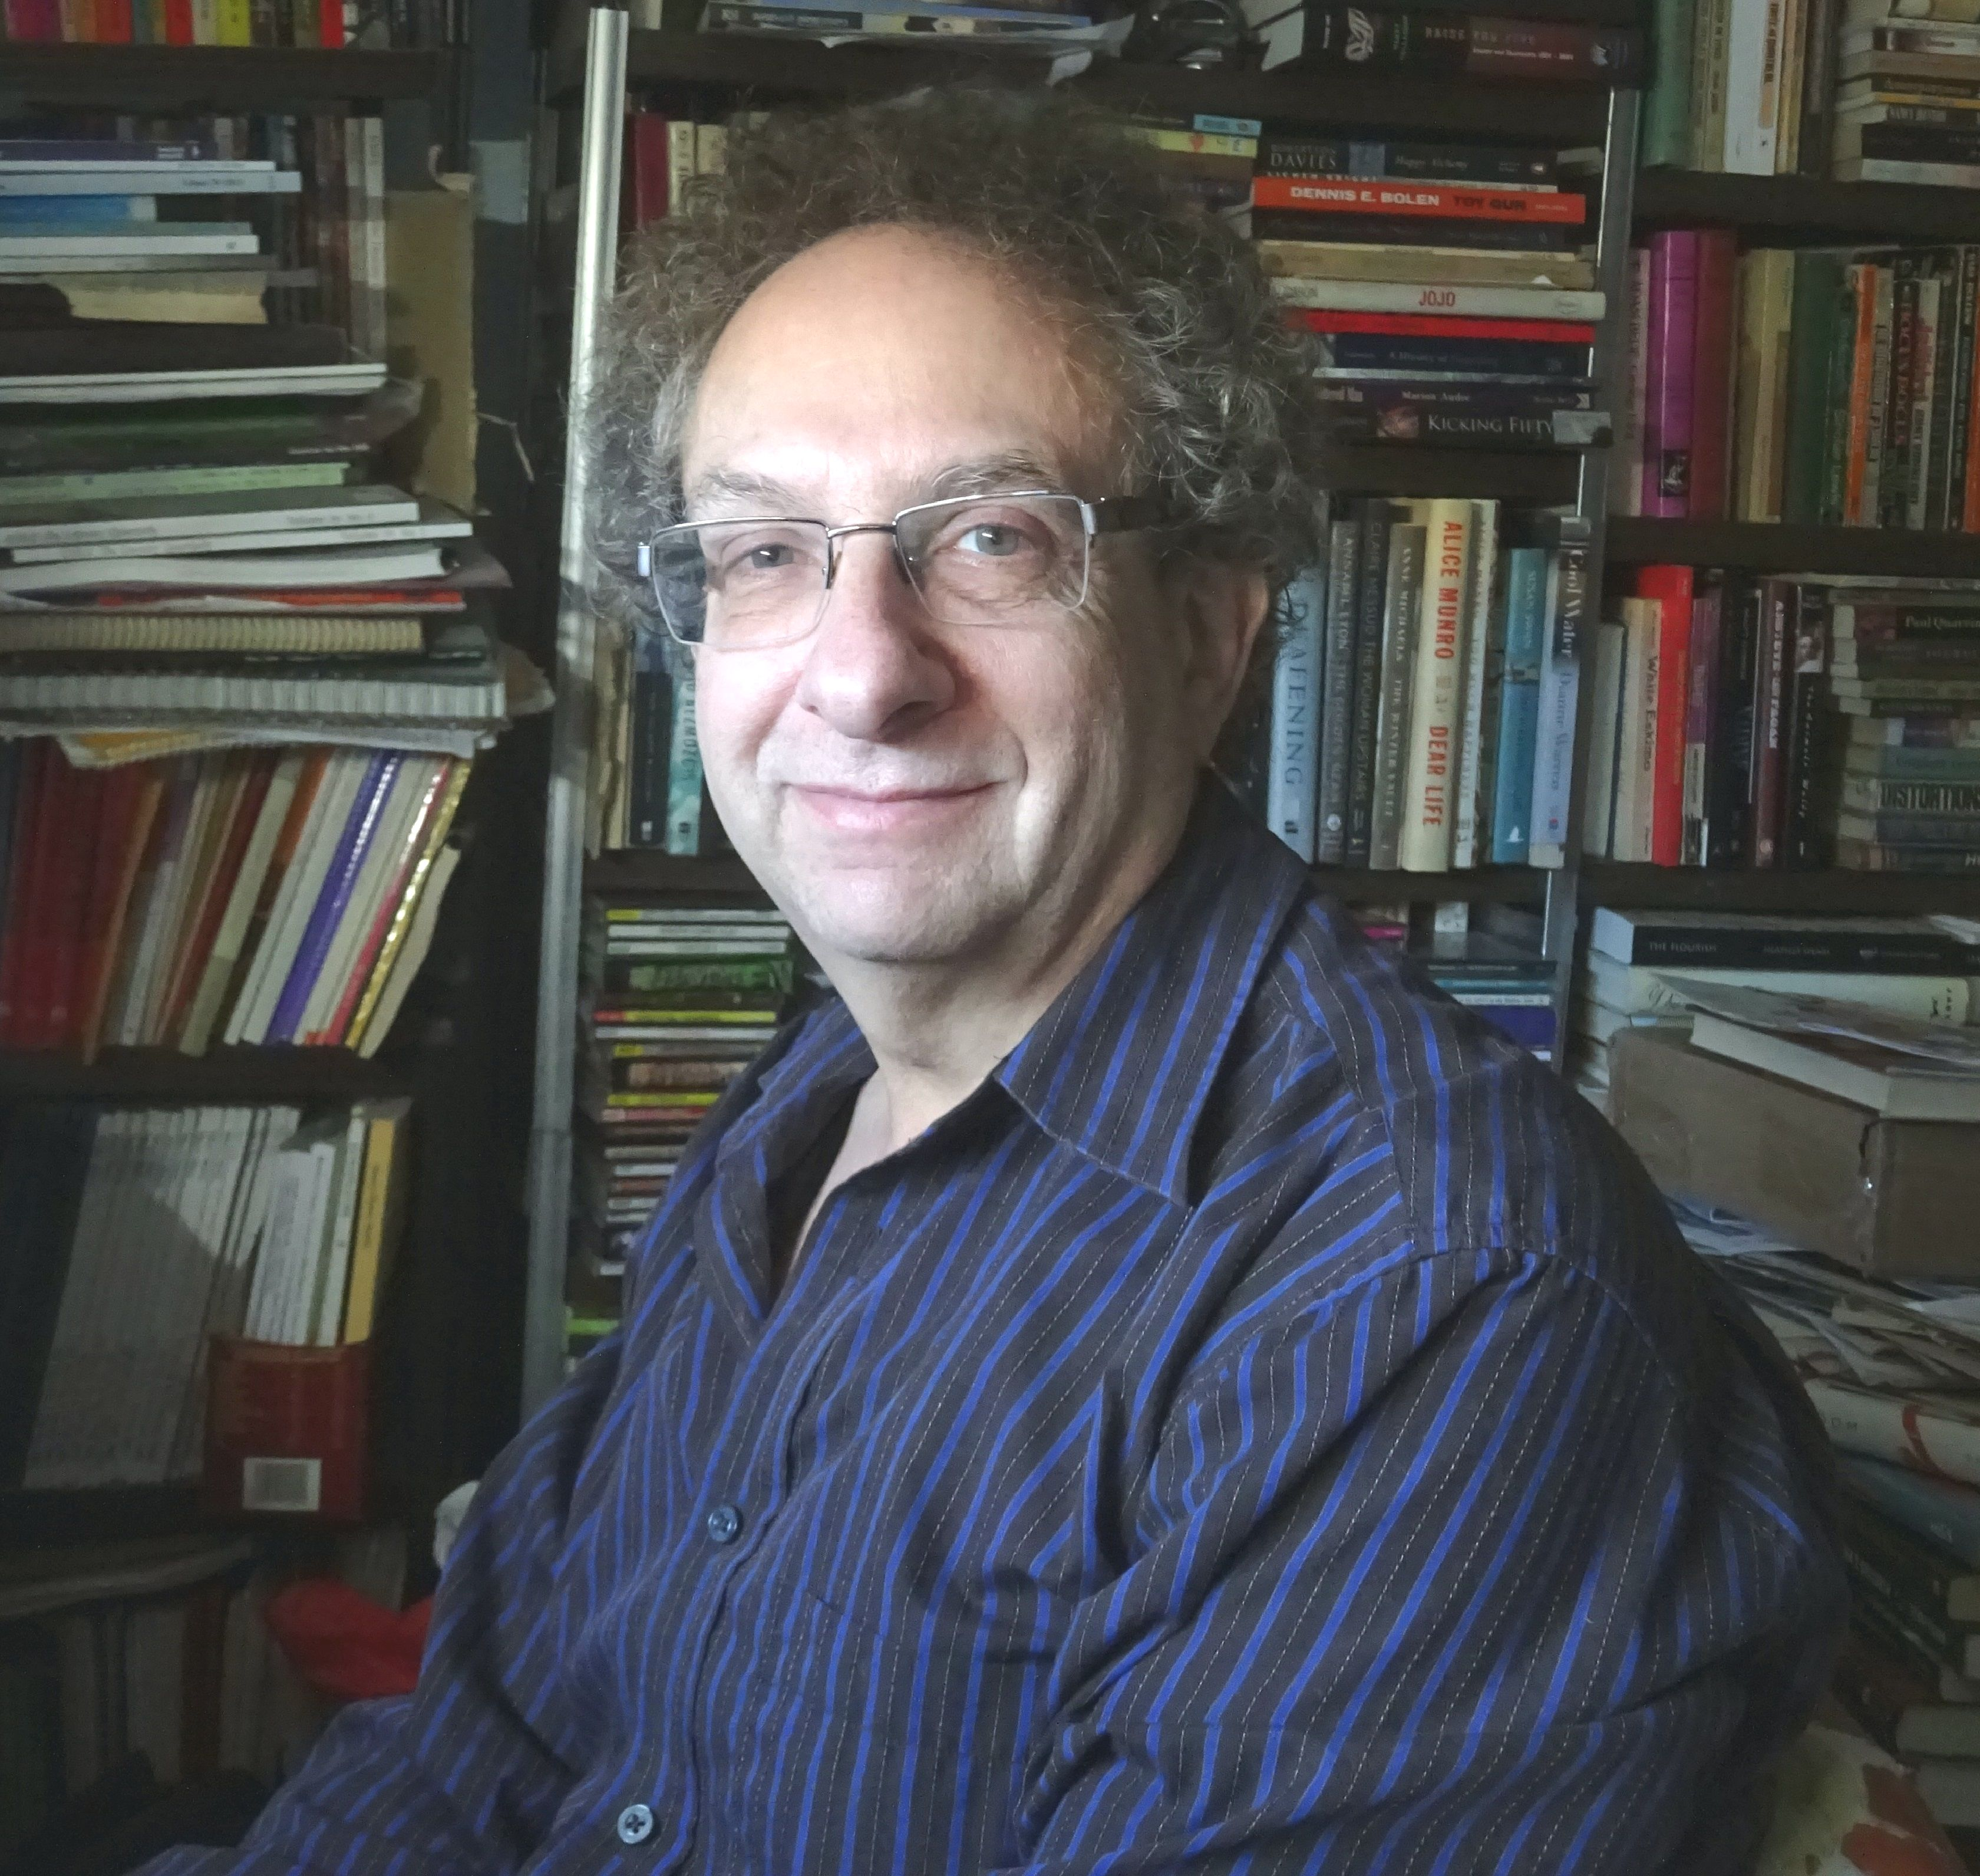 Allan Weiss, home page